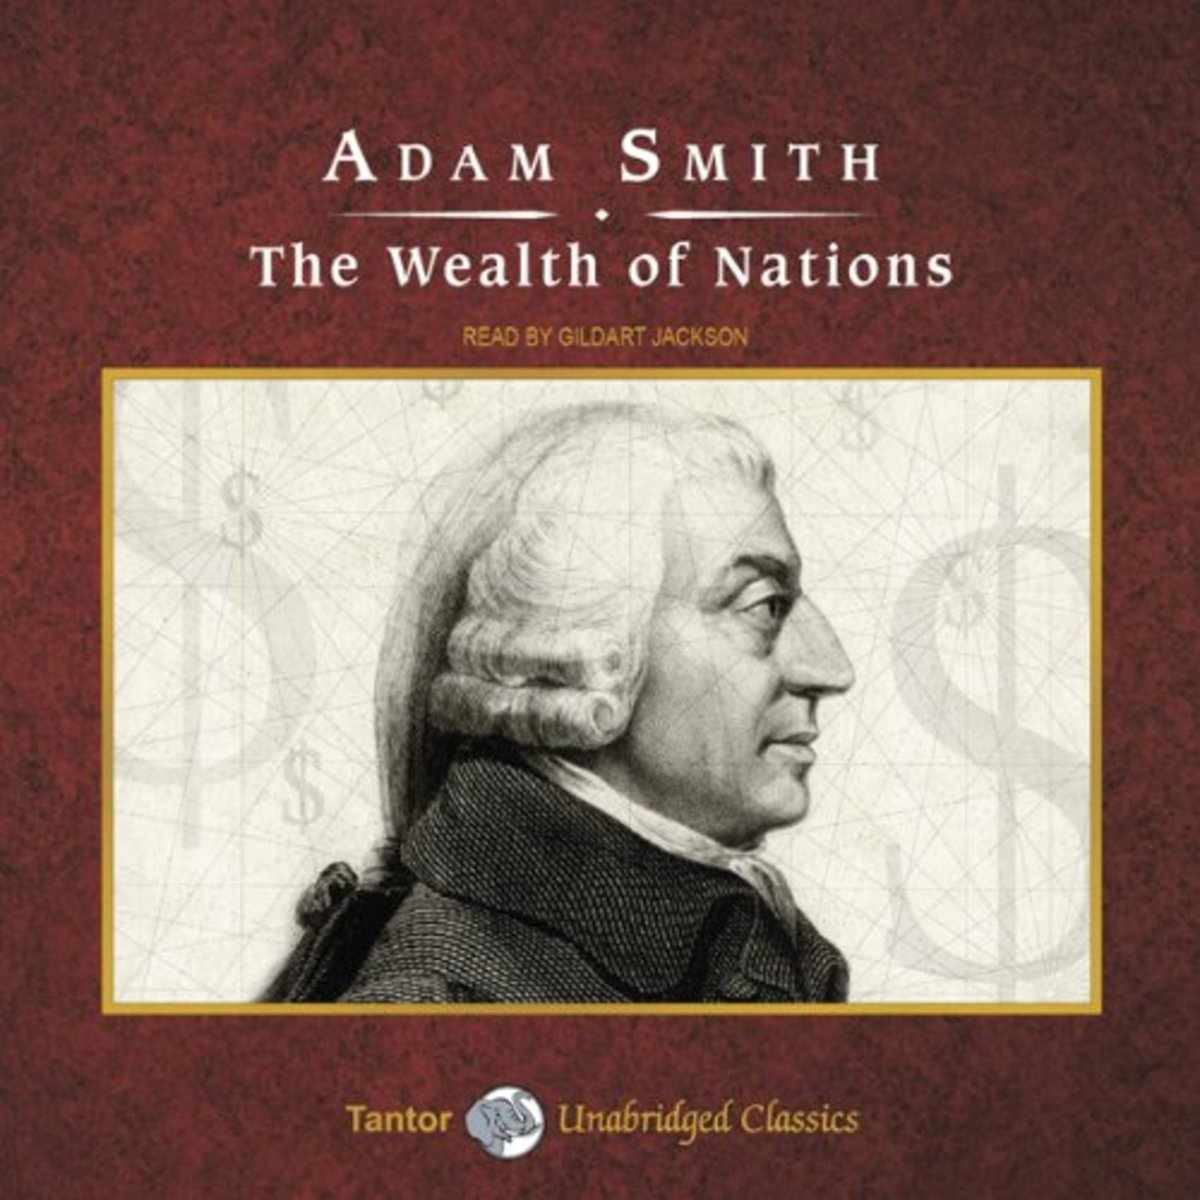 "Adam Smith's ""The Wealth of Nations"" has been misquoted more than the Bible in a disingenuous effort to promote the principles of capitalism."